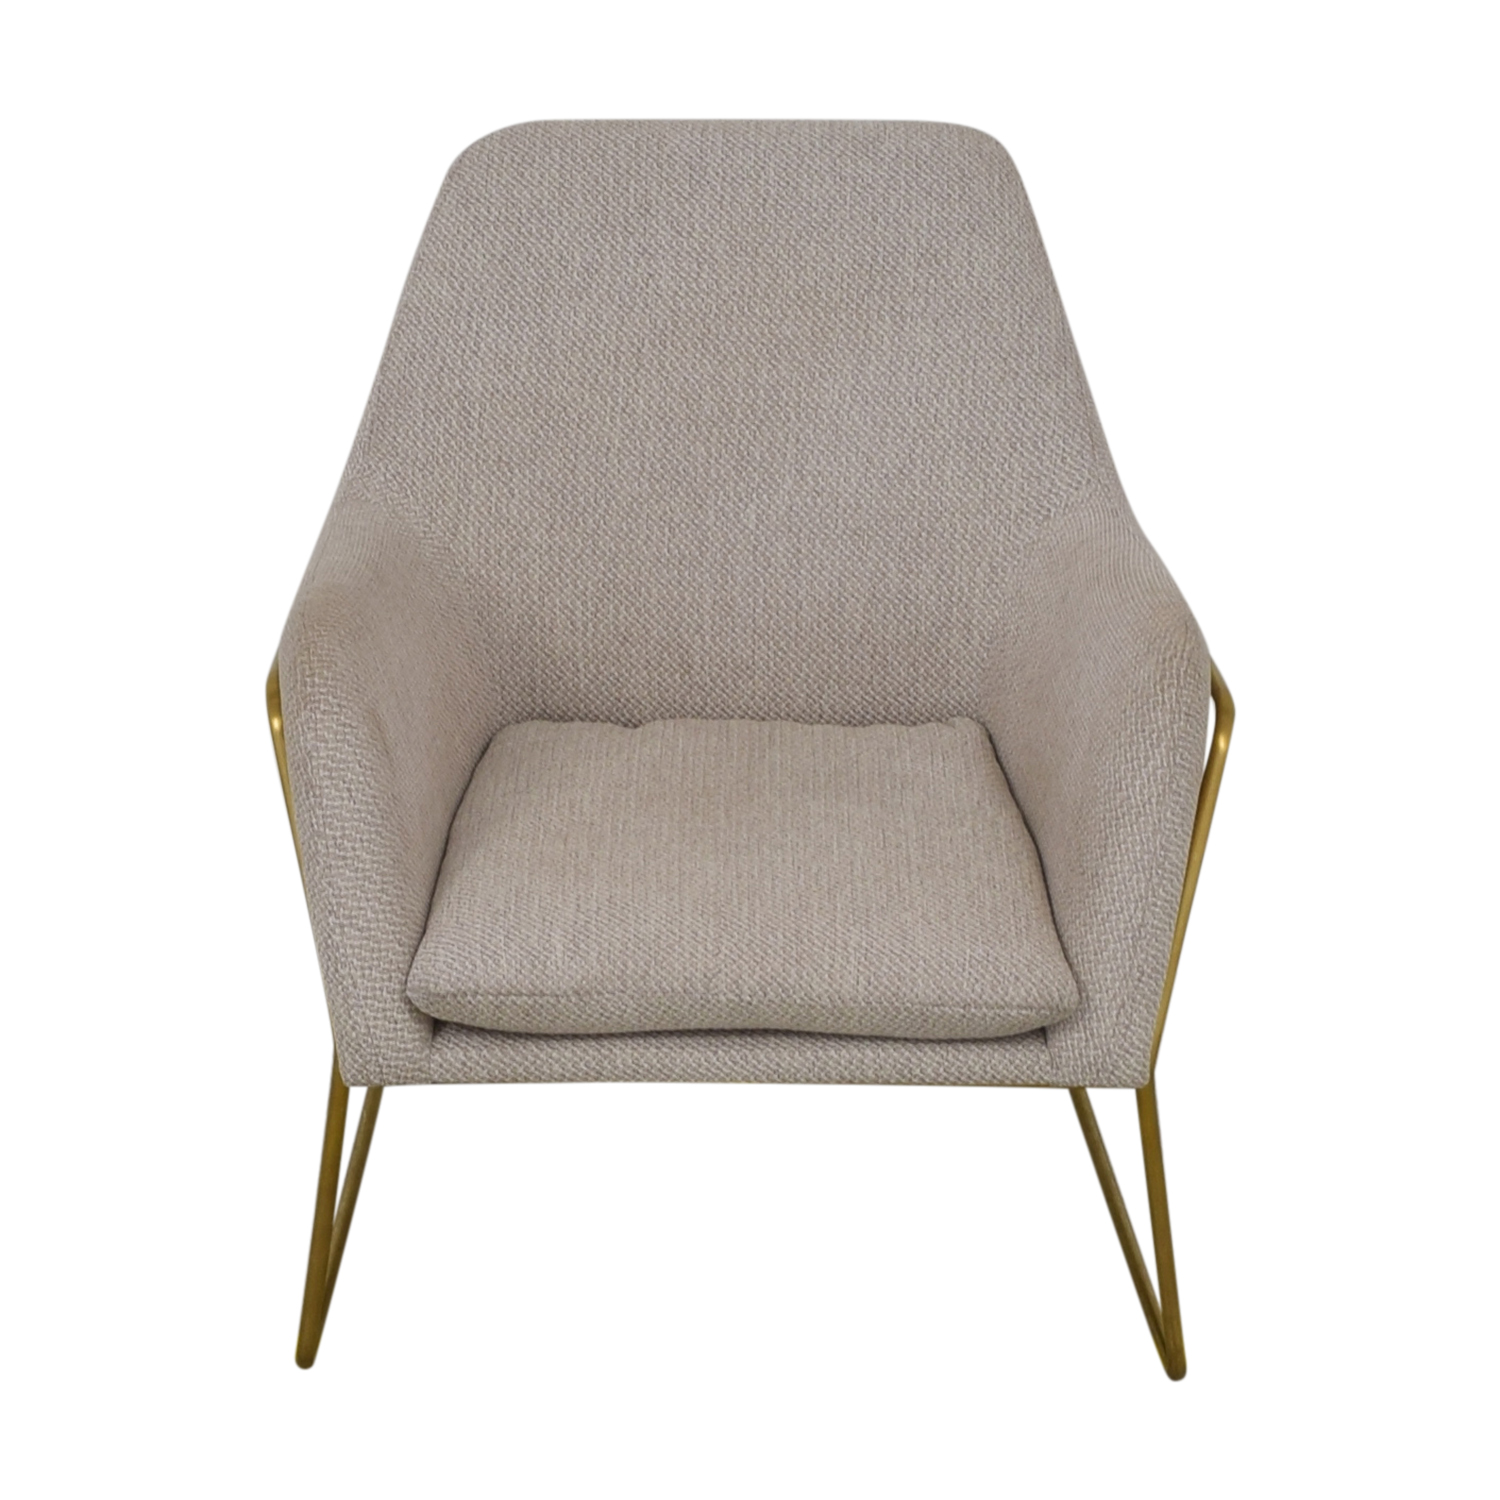 shop Article Article Forma Chair online